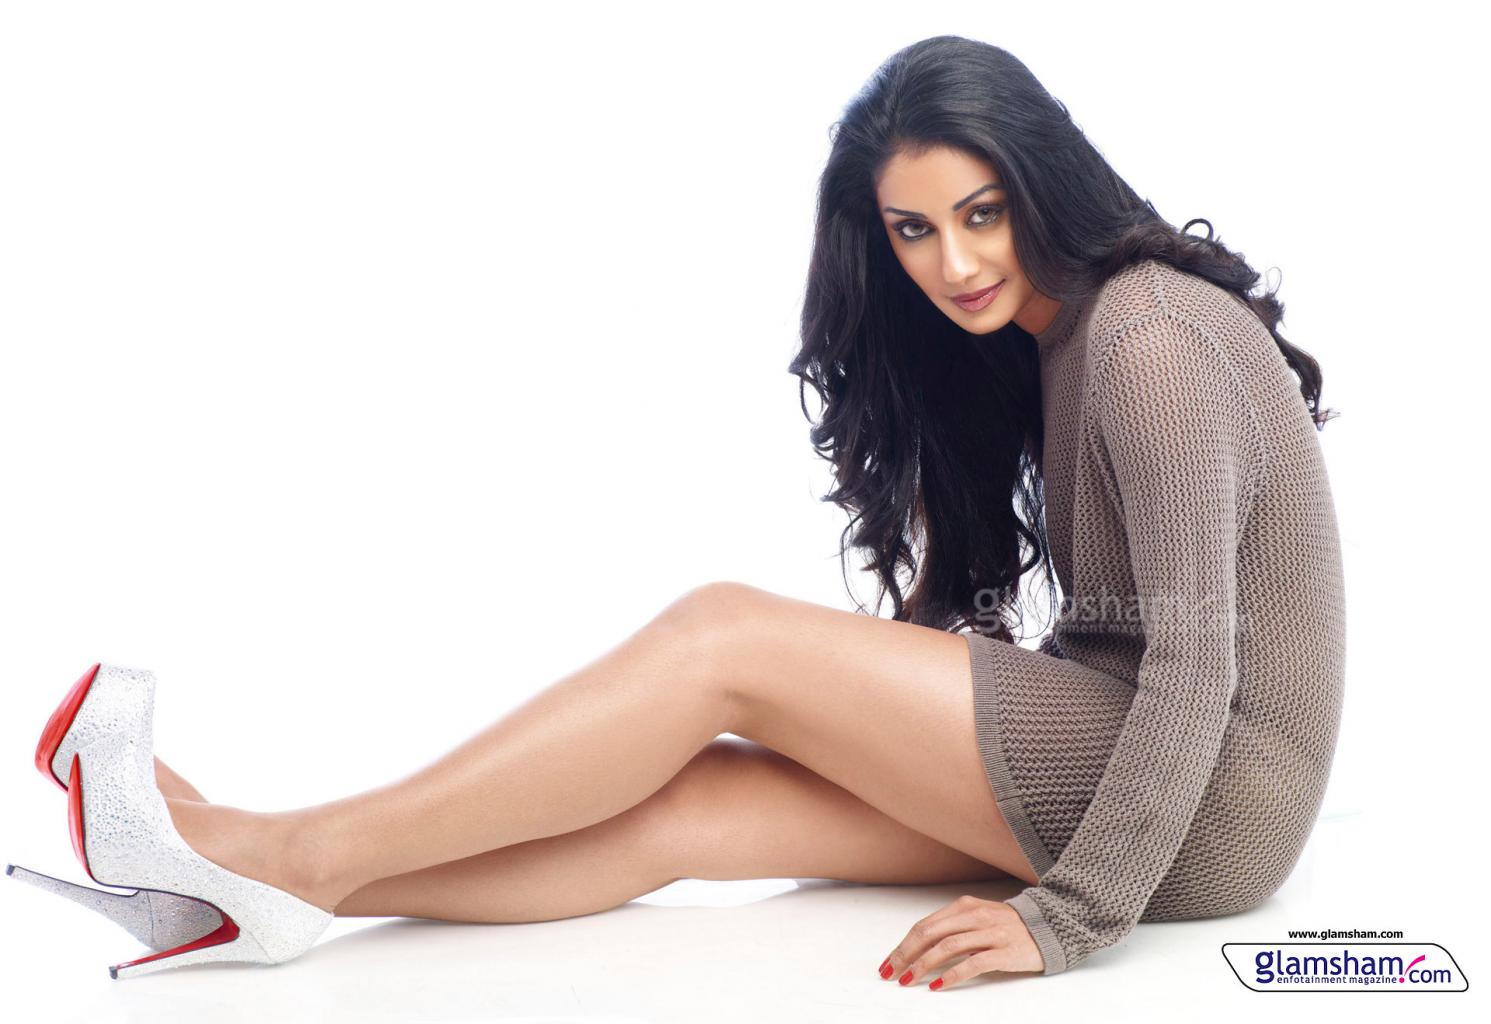 Mahek Chahal - Alchetron, The Free Social Encyclopedia